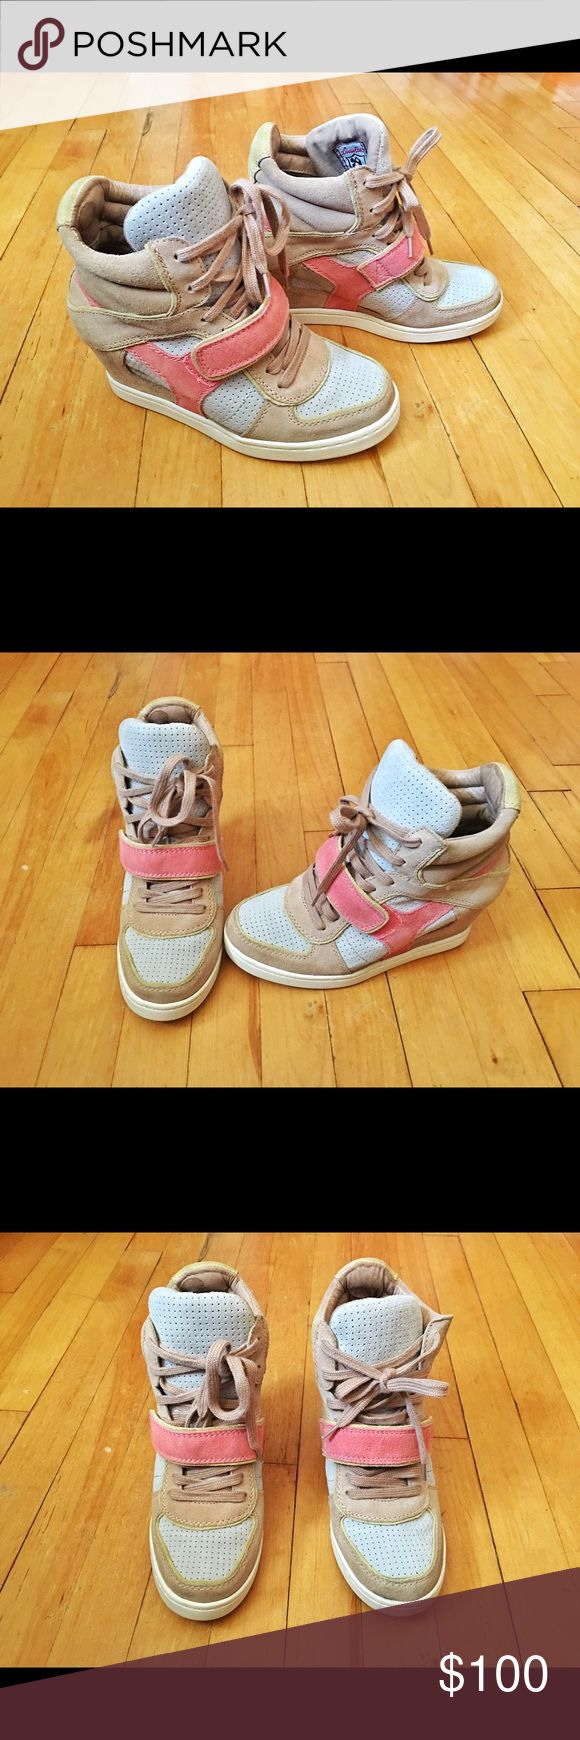 """Limited Edition Ash Bowie Women's Wedge Sneaker 9 Color: """"Cocoa Multi"""" Overall beige color with pastel colors of blue, pink and yellow around Shaft measures approx 5"""" from arch Heel measures around 2""""  Reviews for these Ash Bowie sneakers are 4 out of 5 stars! With the Sneaker fad soaring, you'll definitely be able to rock these spring-inspired babies! Pair it with any plain colors dresses but be sure to stick to warmer tones so it'll look good! It's definitely a shoe for those who are going…"""